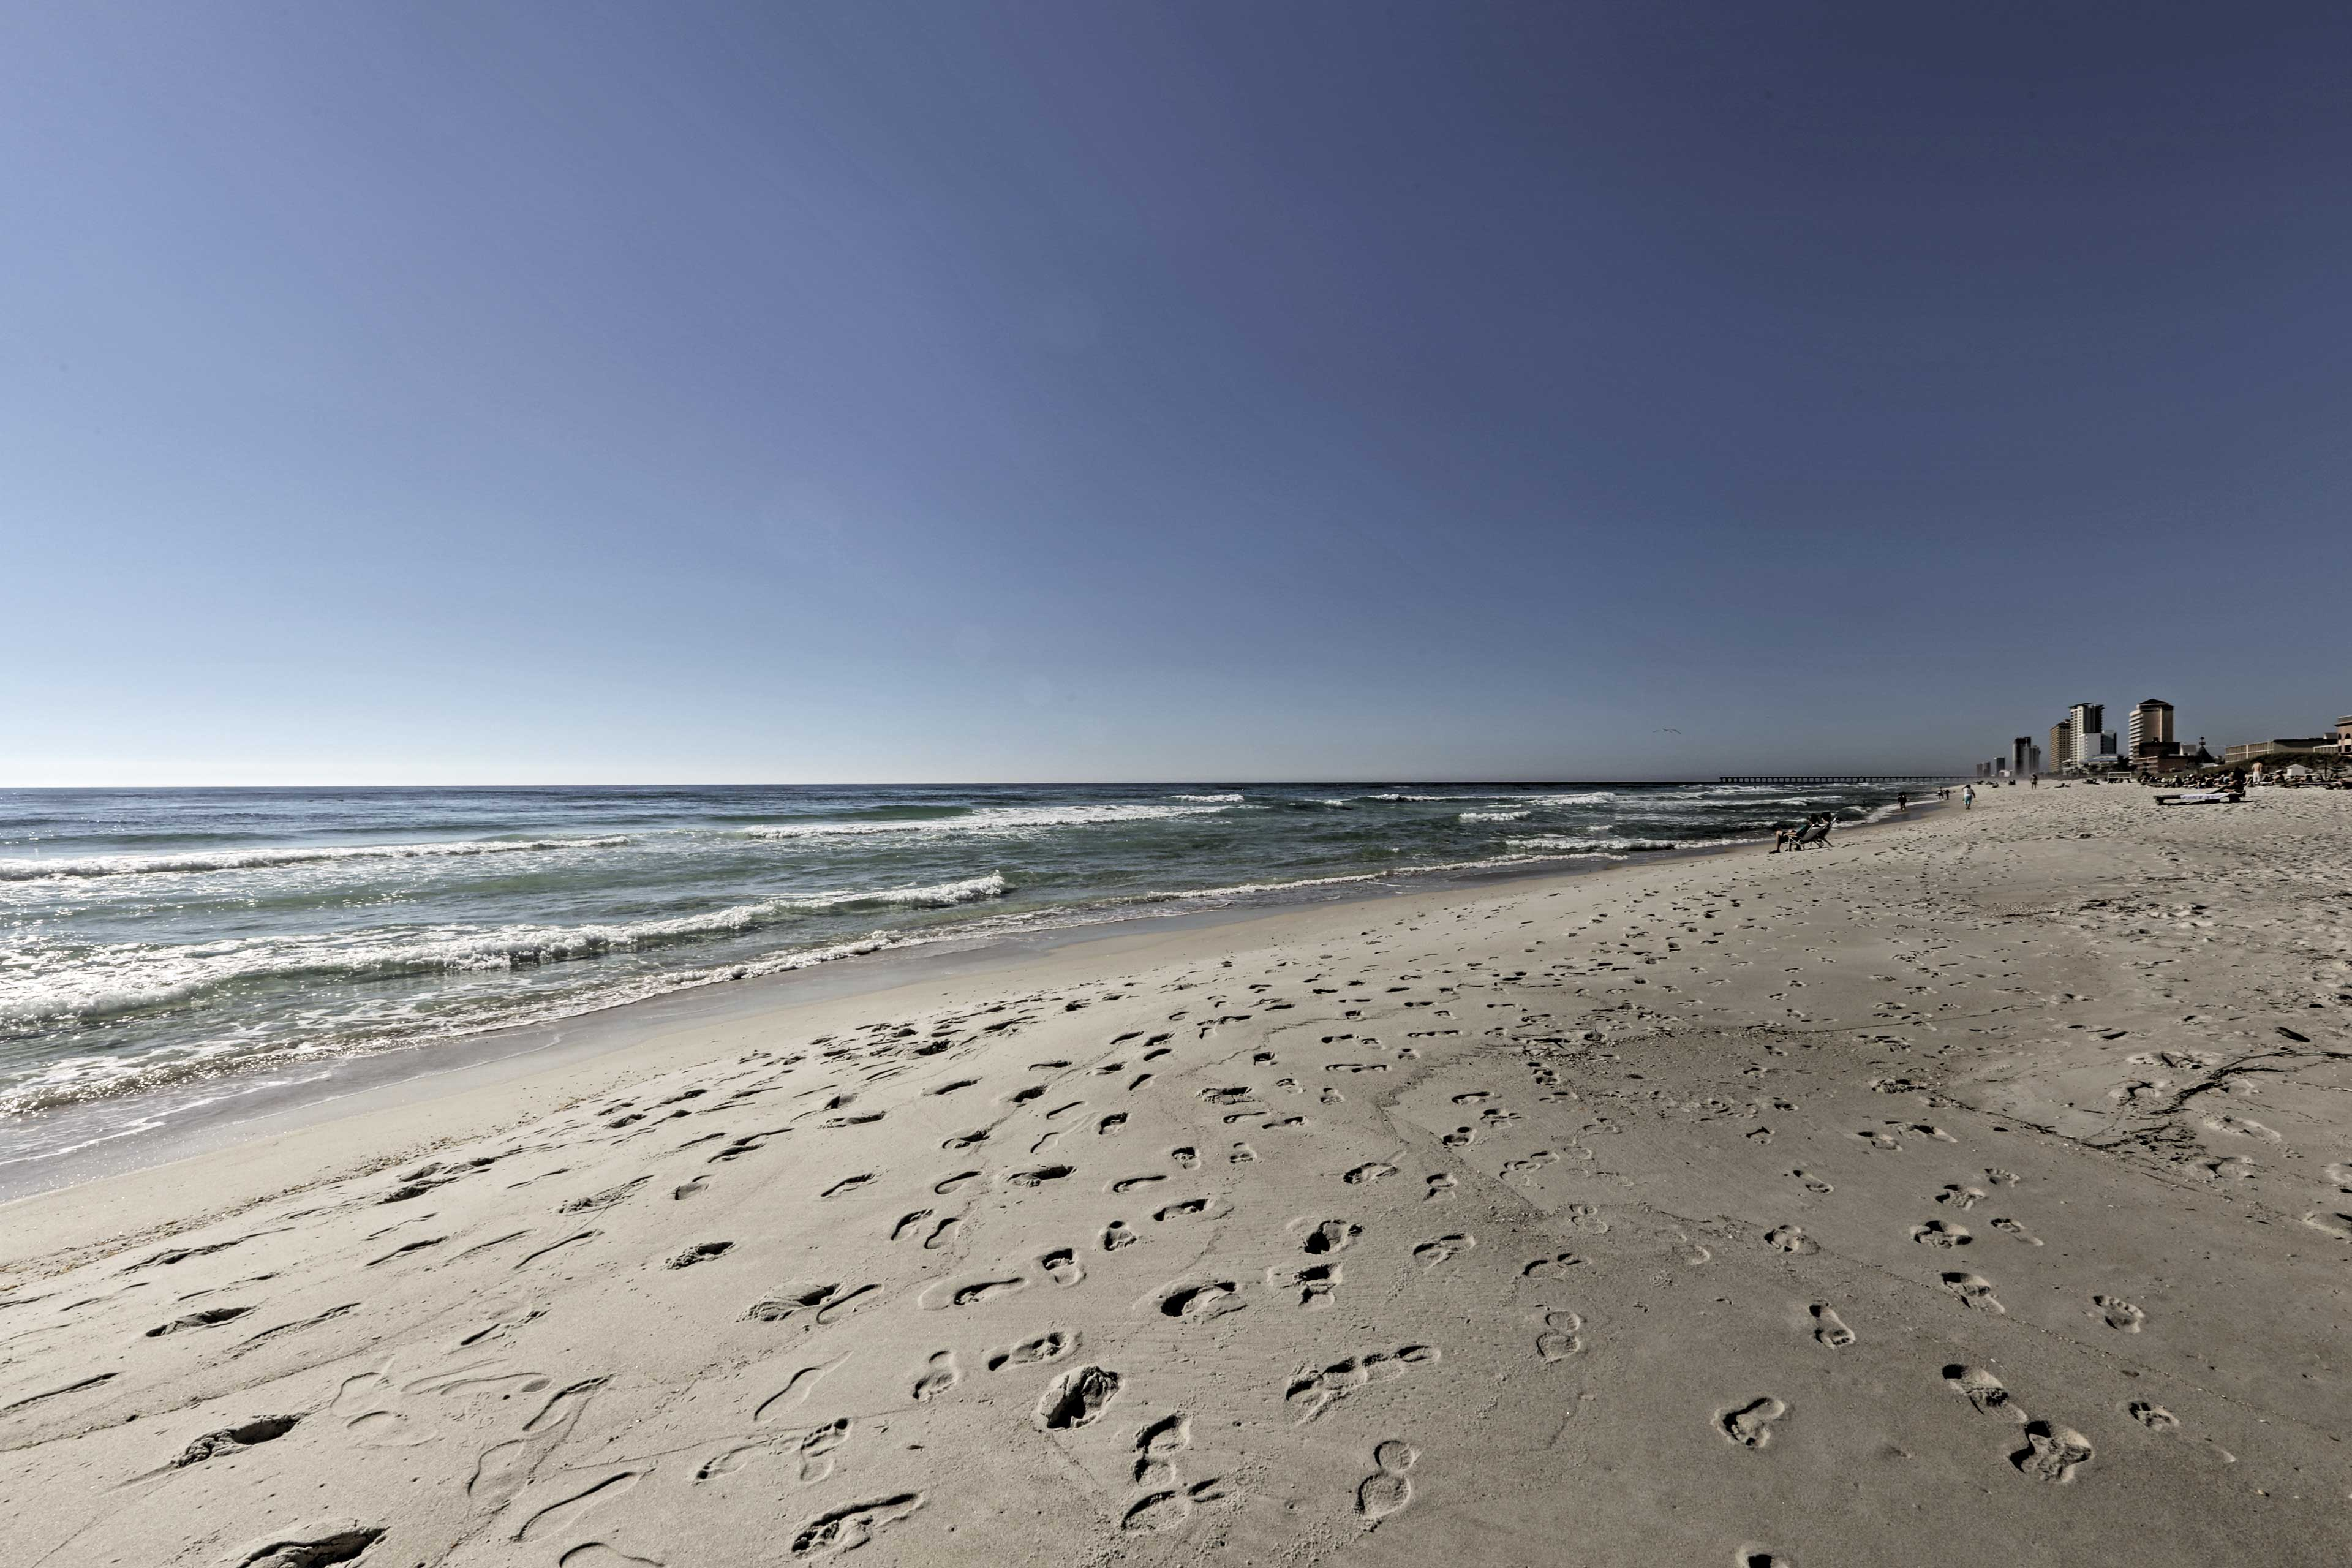 You'll never tire of this stunning beach during your next Florida getaway!